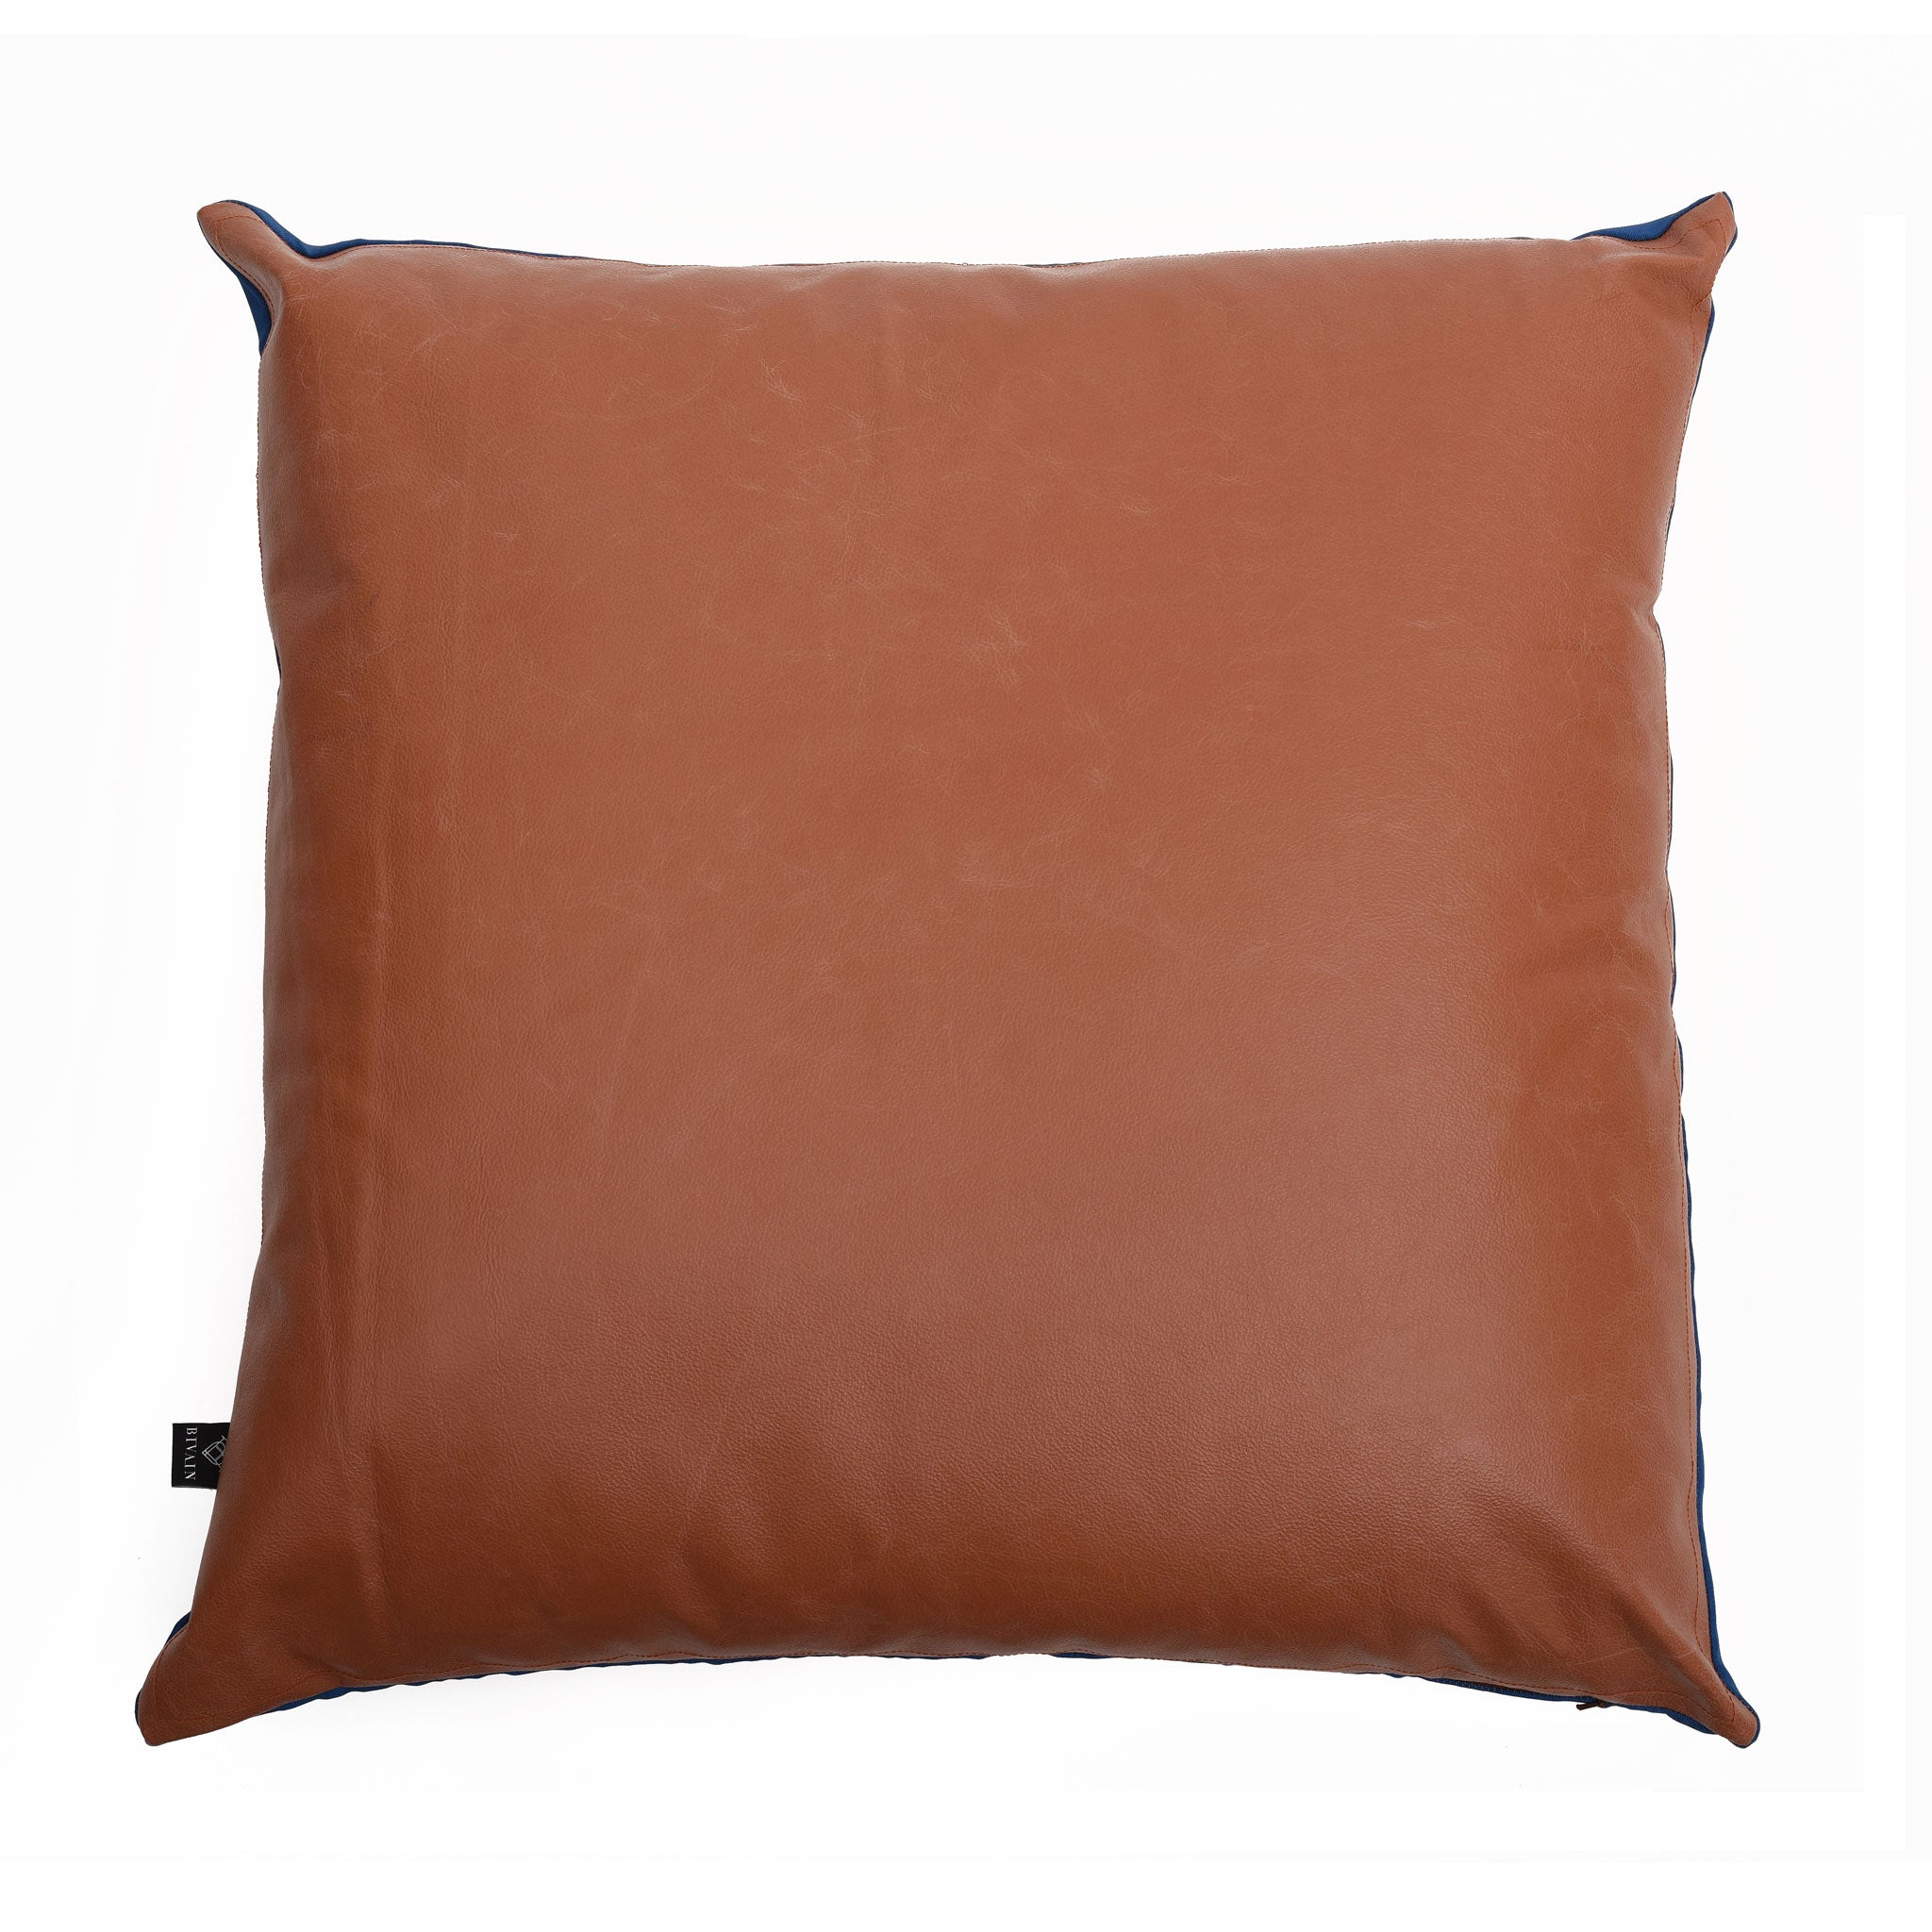 Saddle Silk Cushion Pink Extra Large